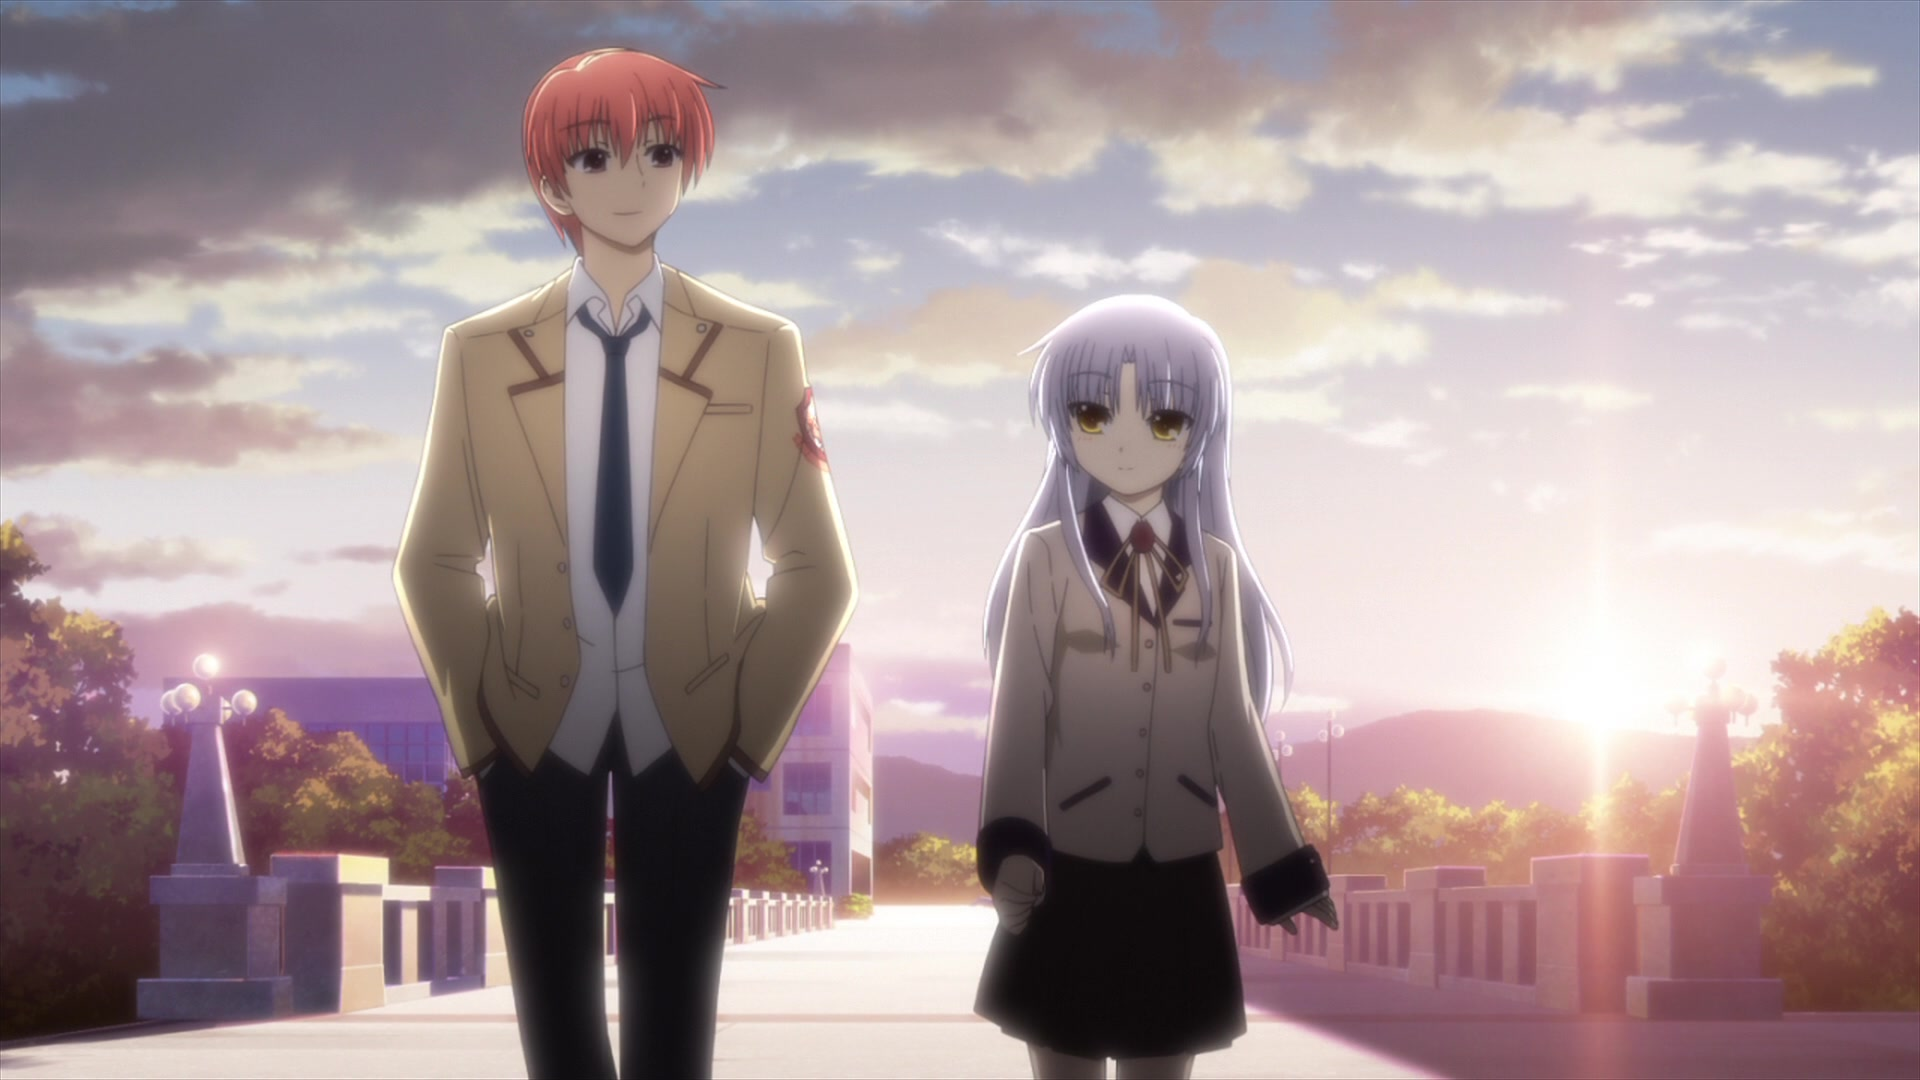 Angel Beats!: An Anime About The Afterlife Influenced By